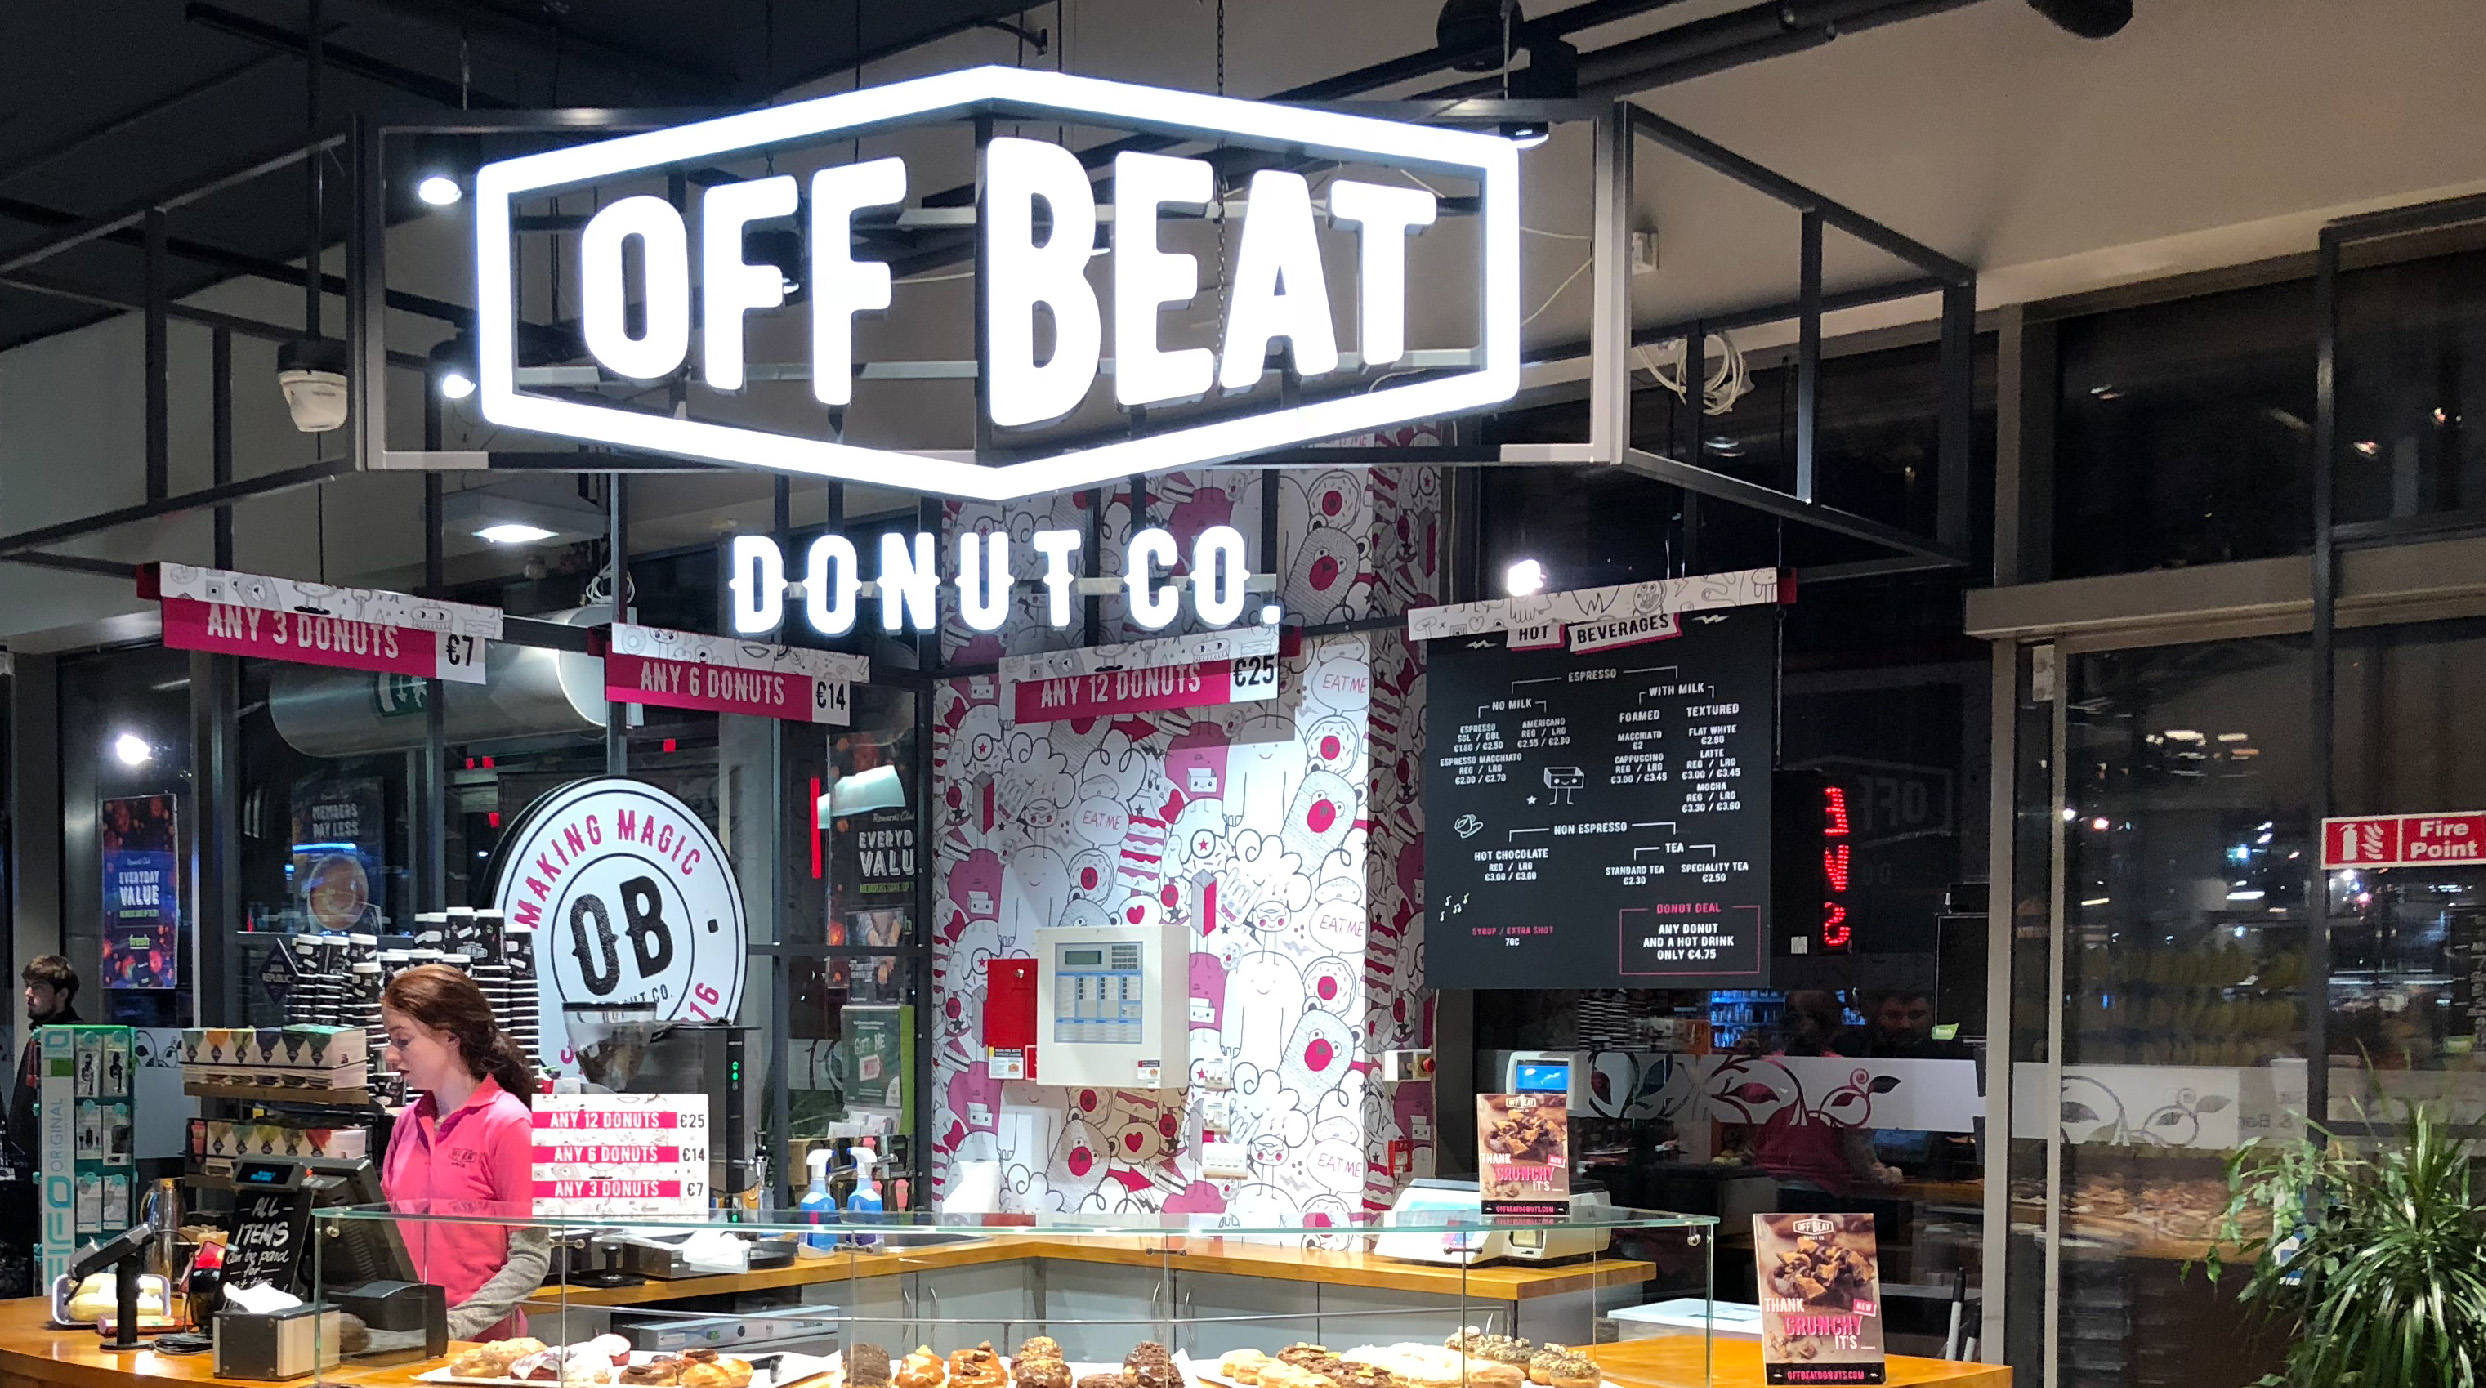 Offbeat Donut Concession Store.jpg